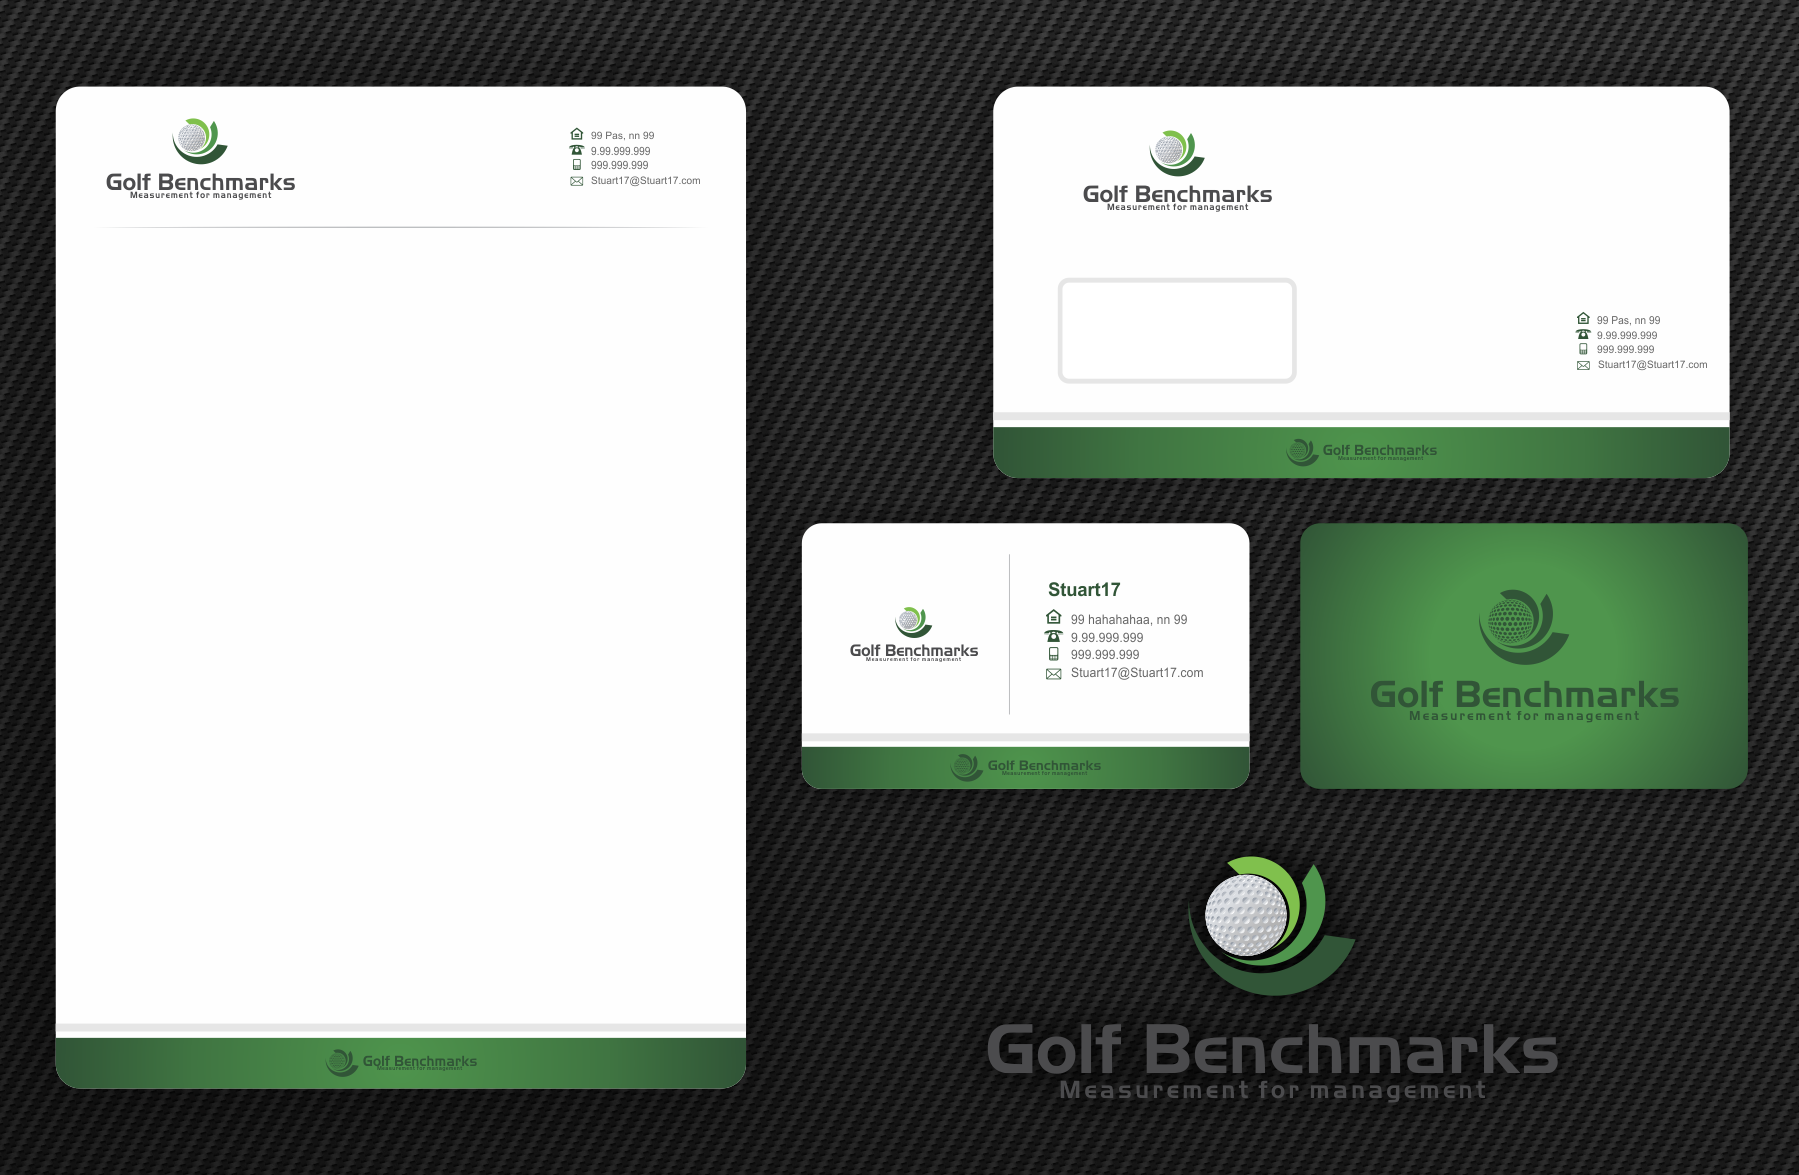 Help Golf Benchmarks with a new logo